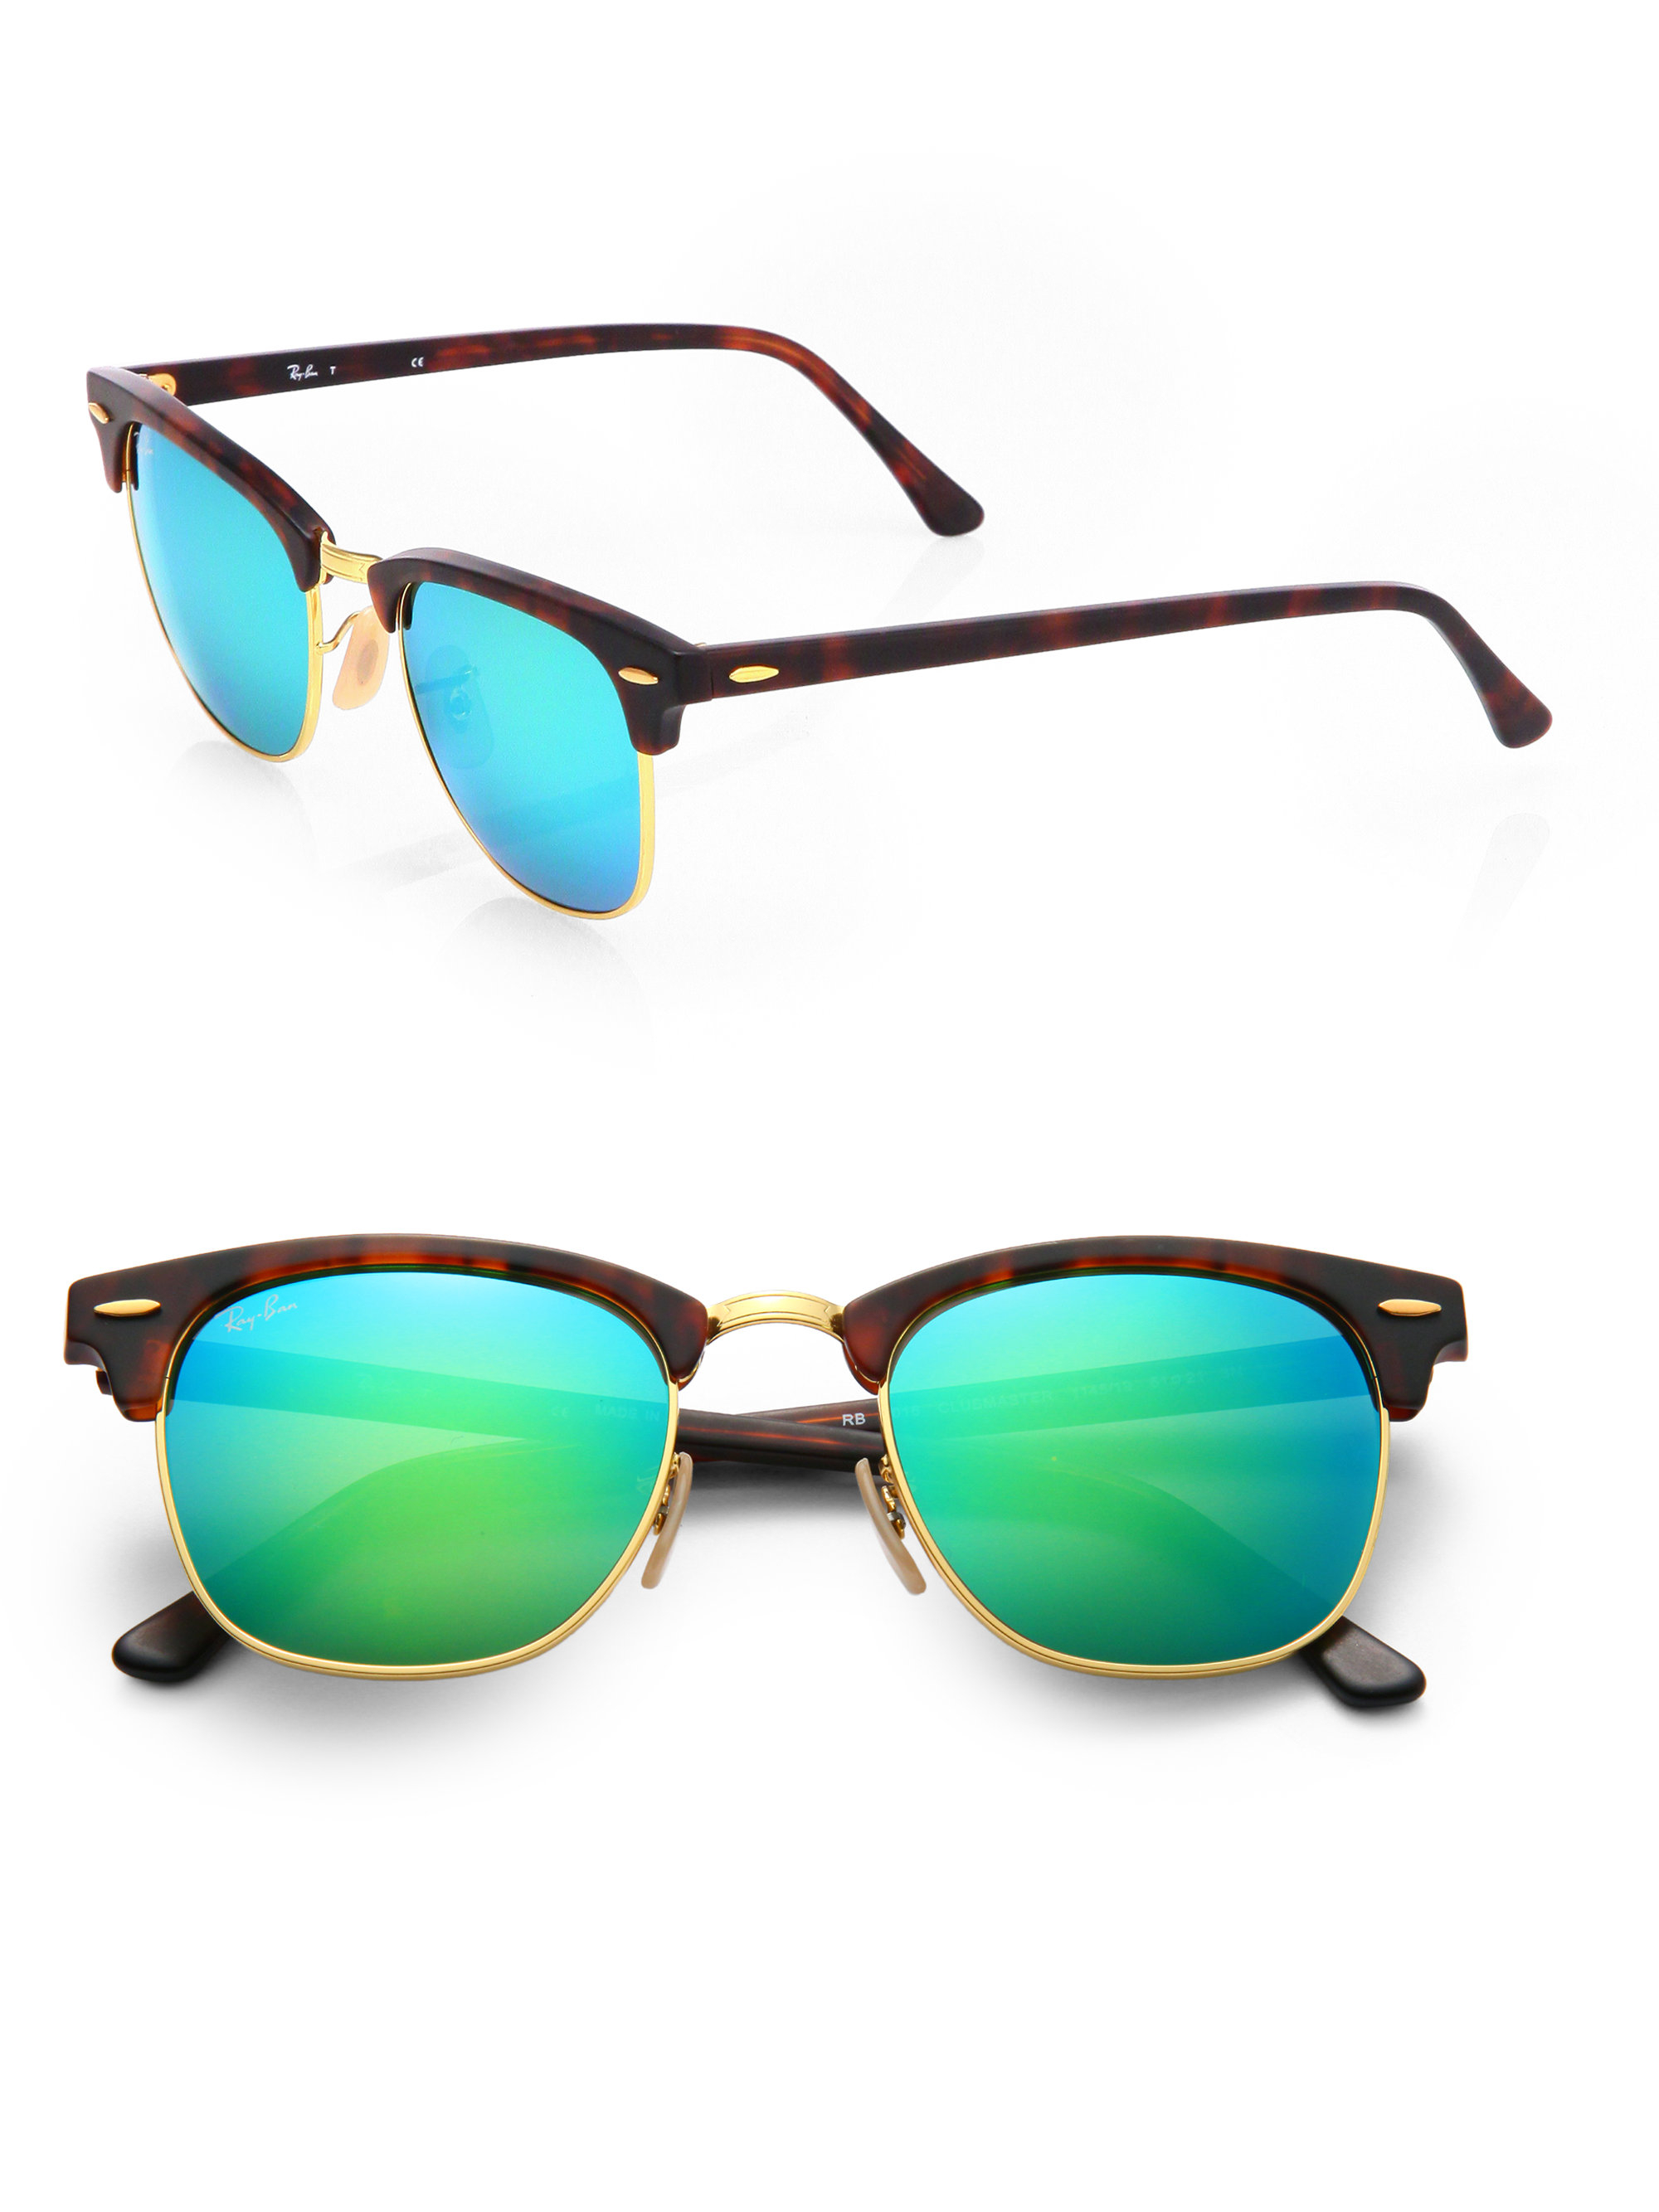 ray ban mirrored clubmaster sunglasses  gallery. previously sold at: saks fifth avenue · men's mirrored sunglasses men's ray ban clubmaster